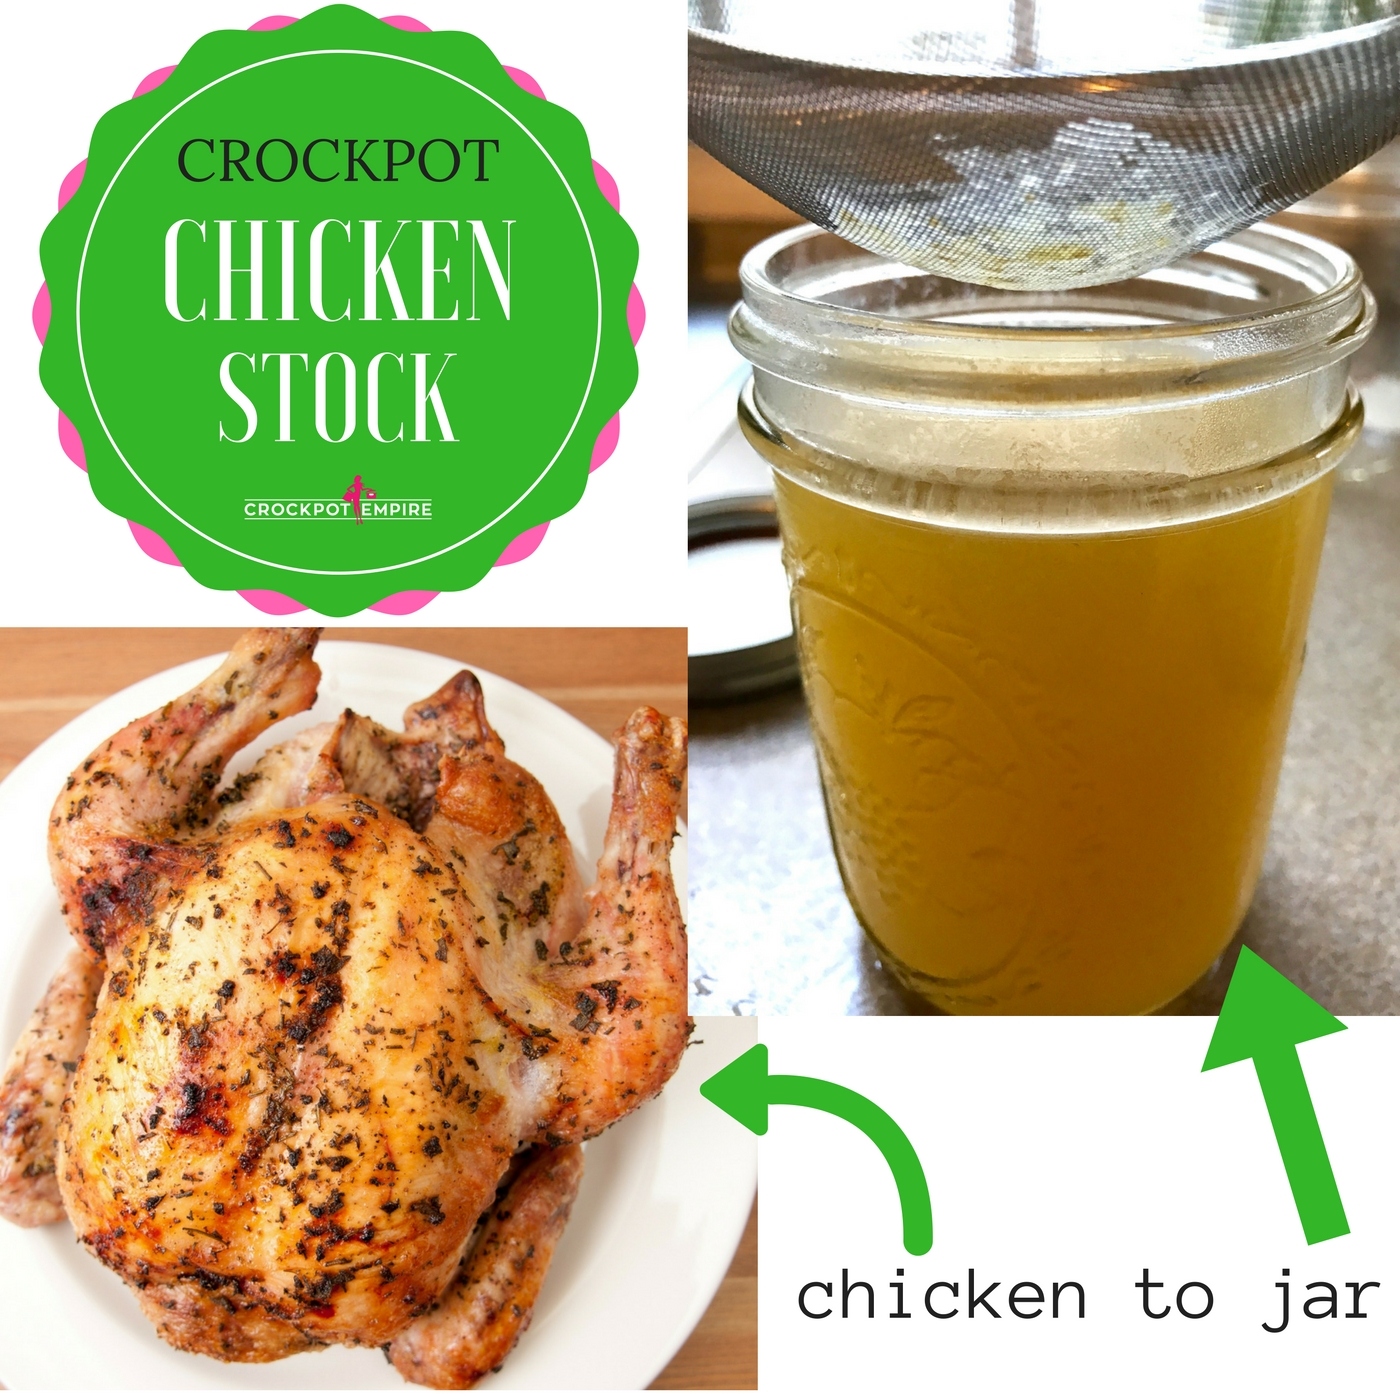 Take a chicken to a jar using a crockpot with this recipe on Crockpot Empire